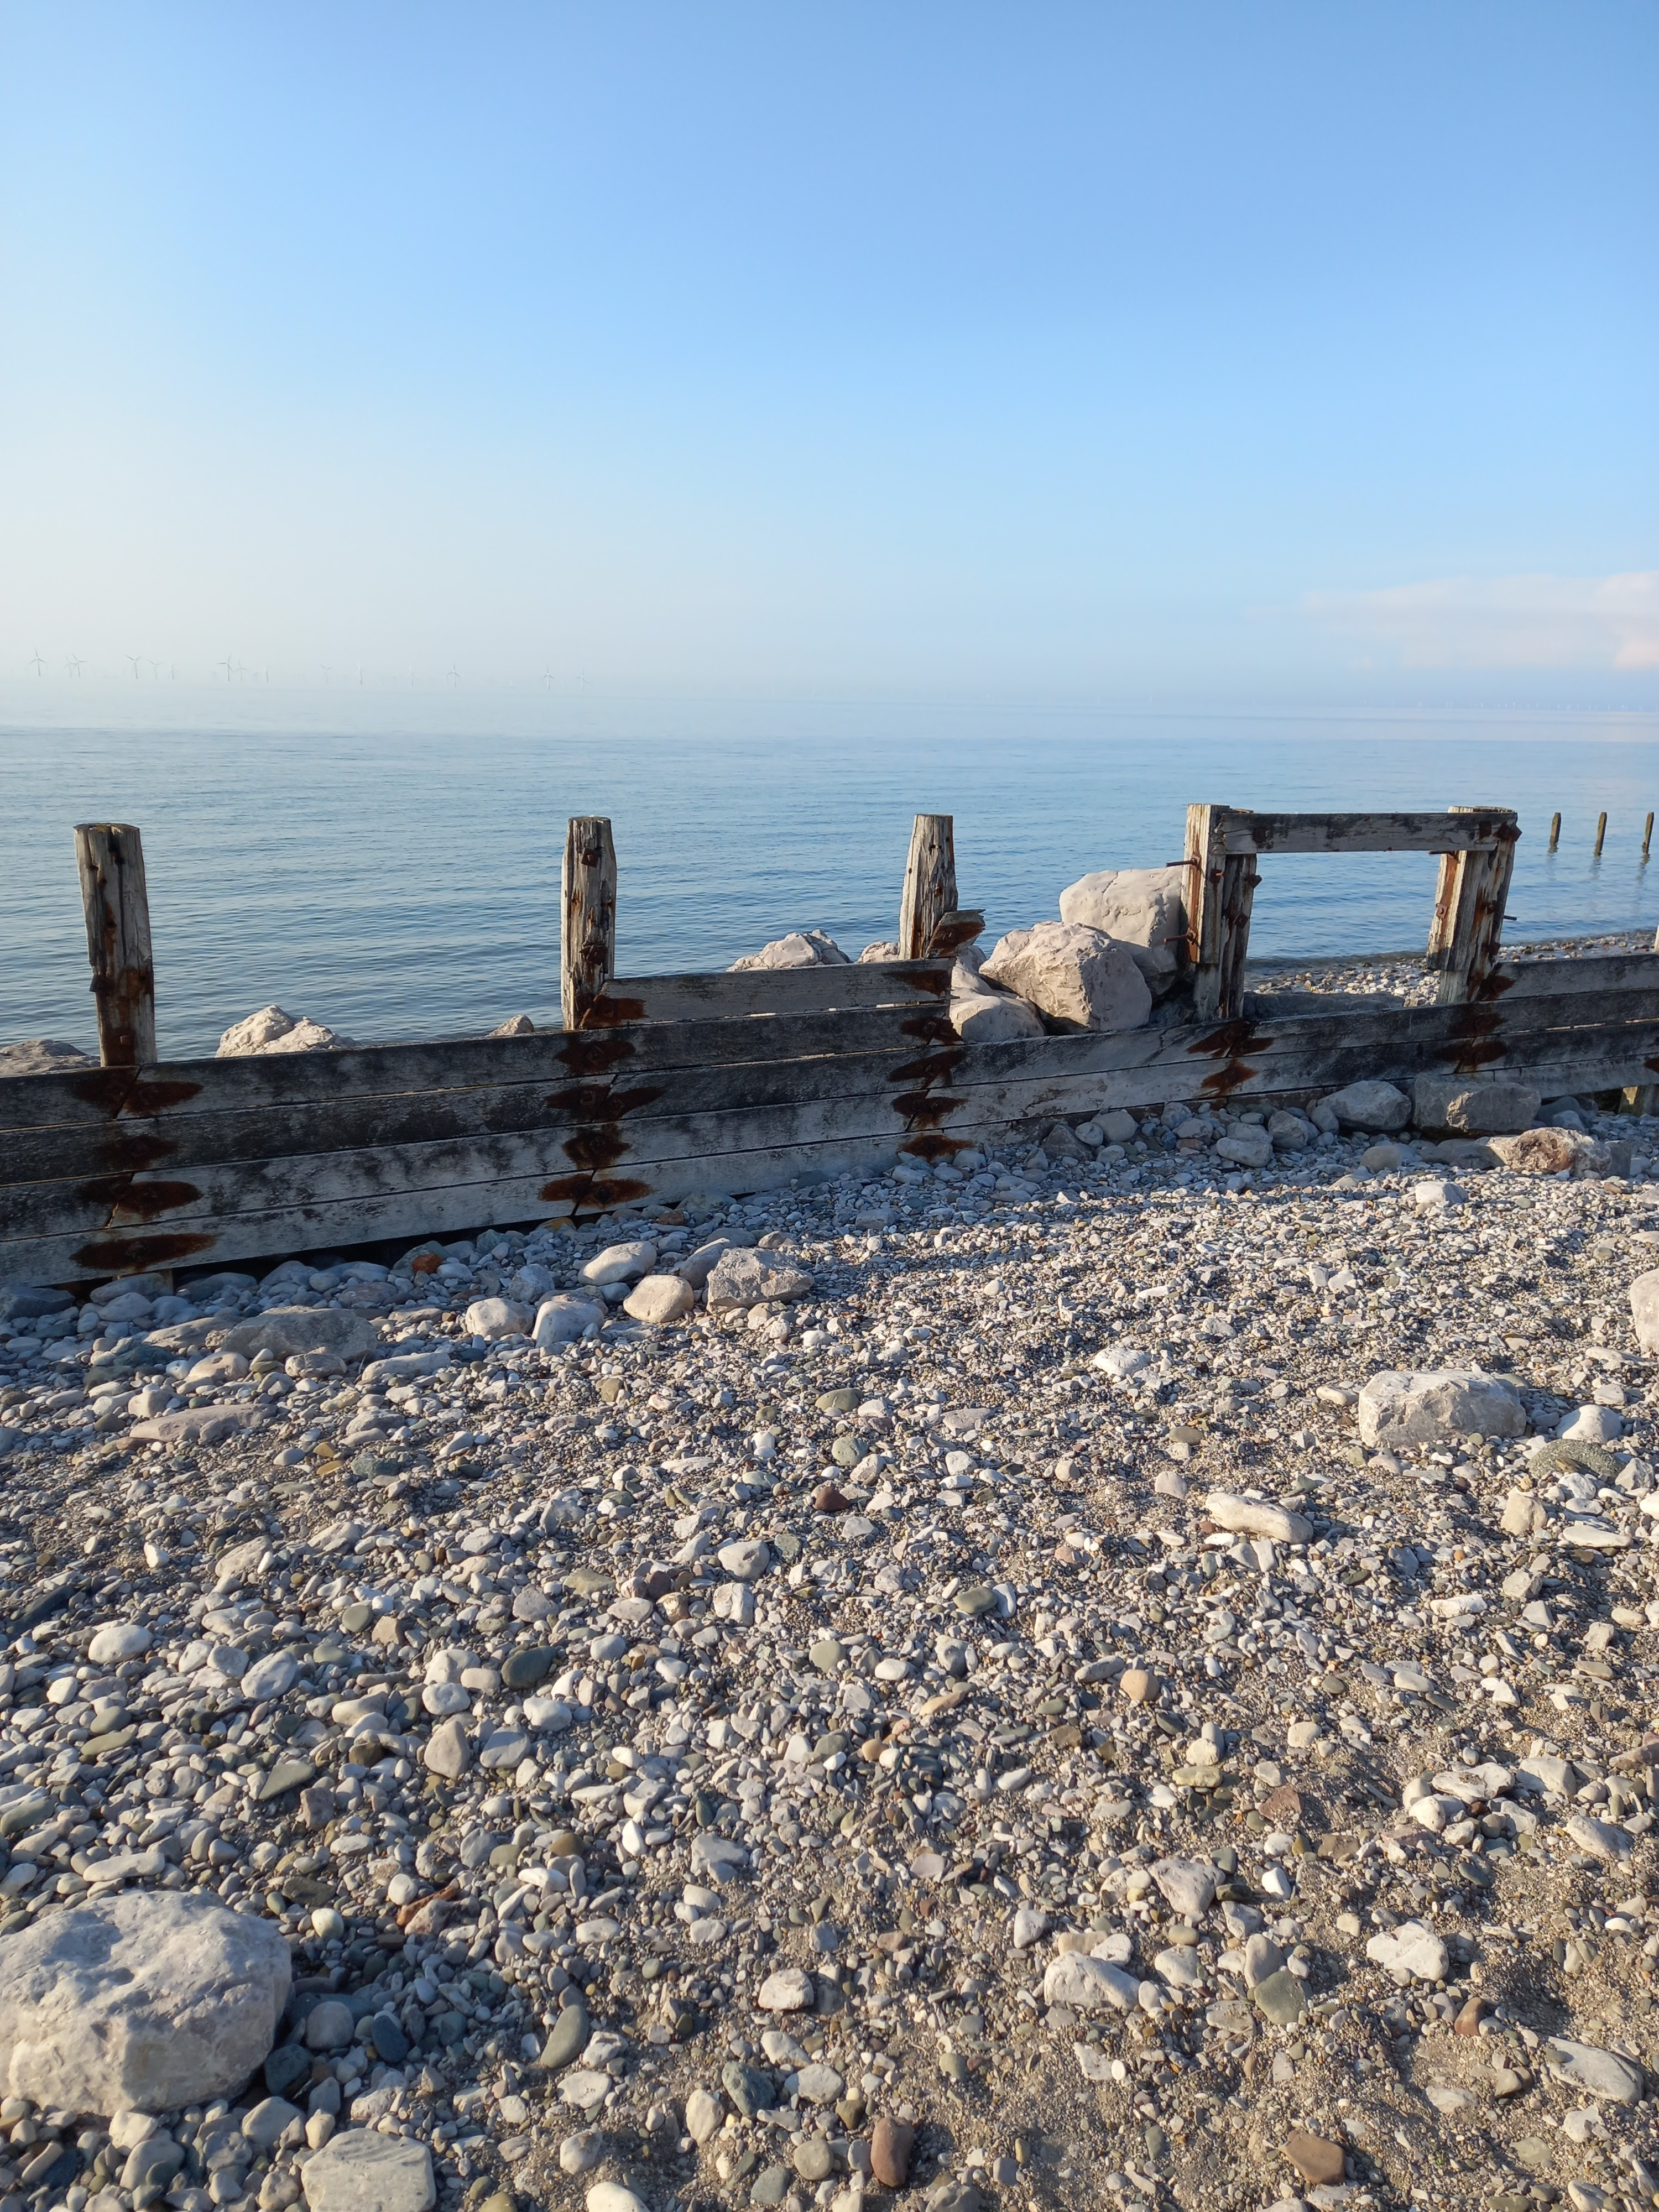 Picture of stoney beach looking out to still clean sea taken by Diane Woodrow author of The Little Yellow Boat book